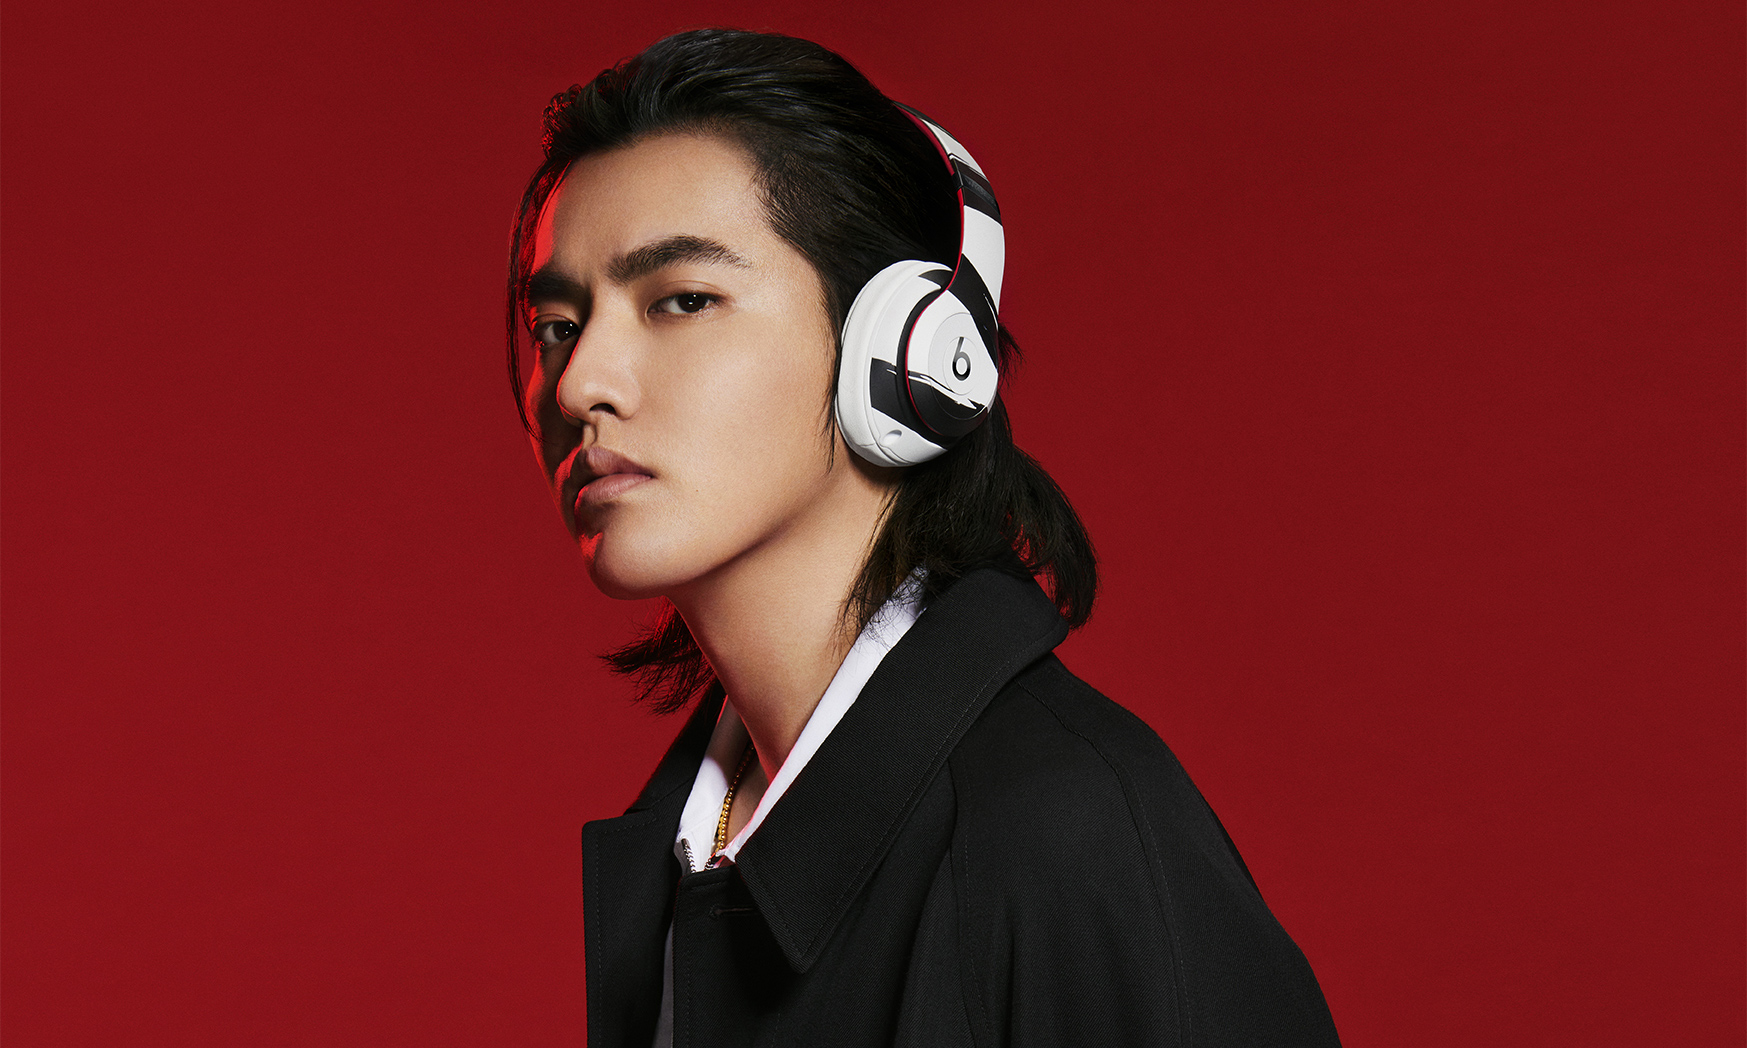 Beats by Dr. Dre 推出吴亦凡限定 Studio3 Wireless 耳机